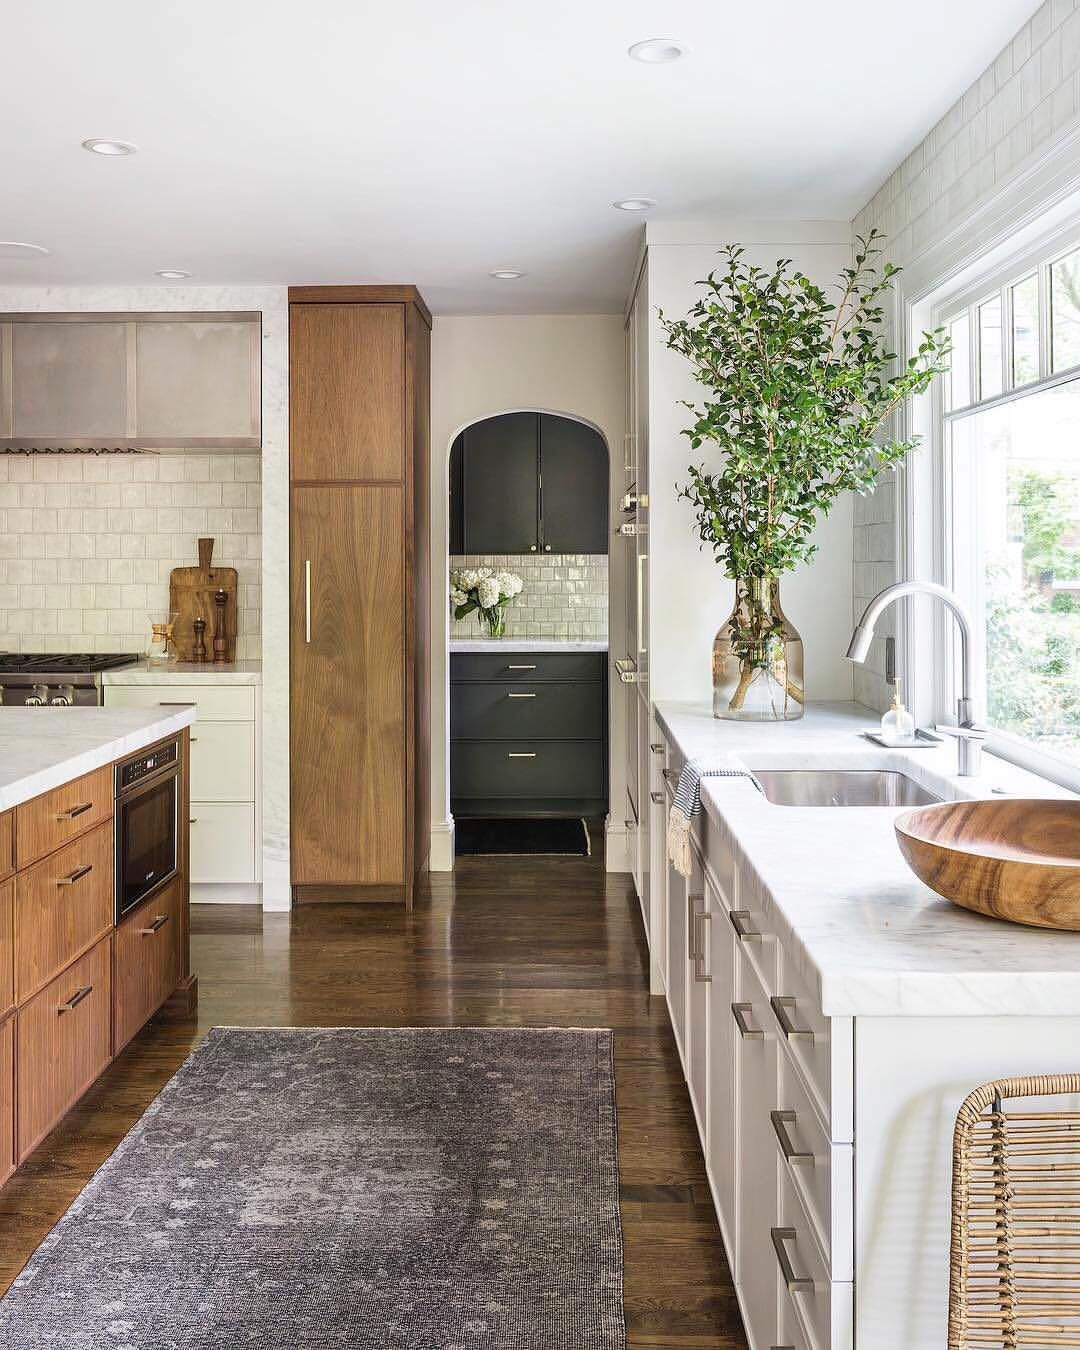 3 Different Kitchen Cabinet Finishes That Work Well Together Simple Kitchen Cabinets Kitchen Style Home Decor Kitchen